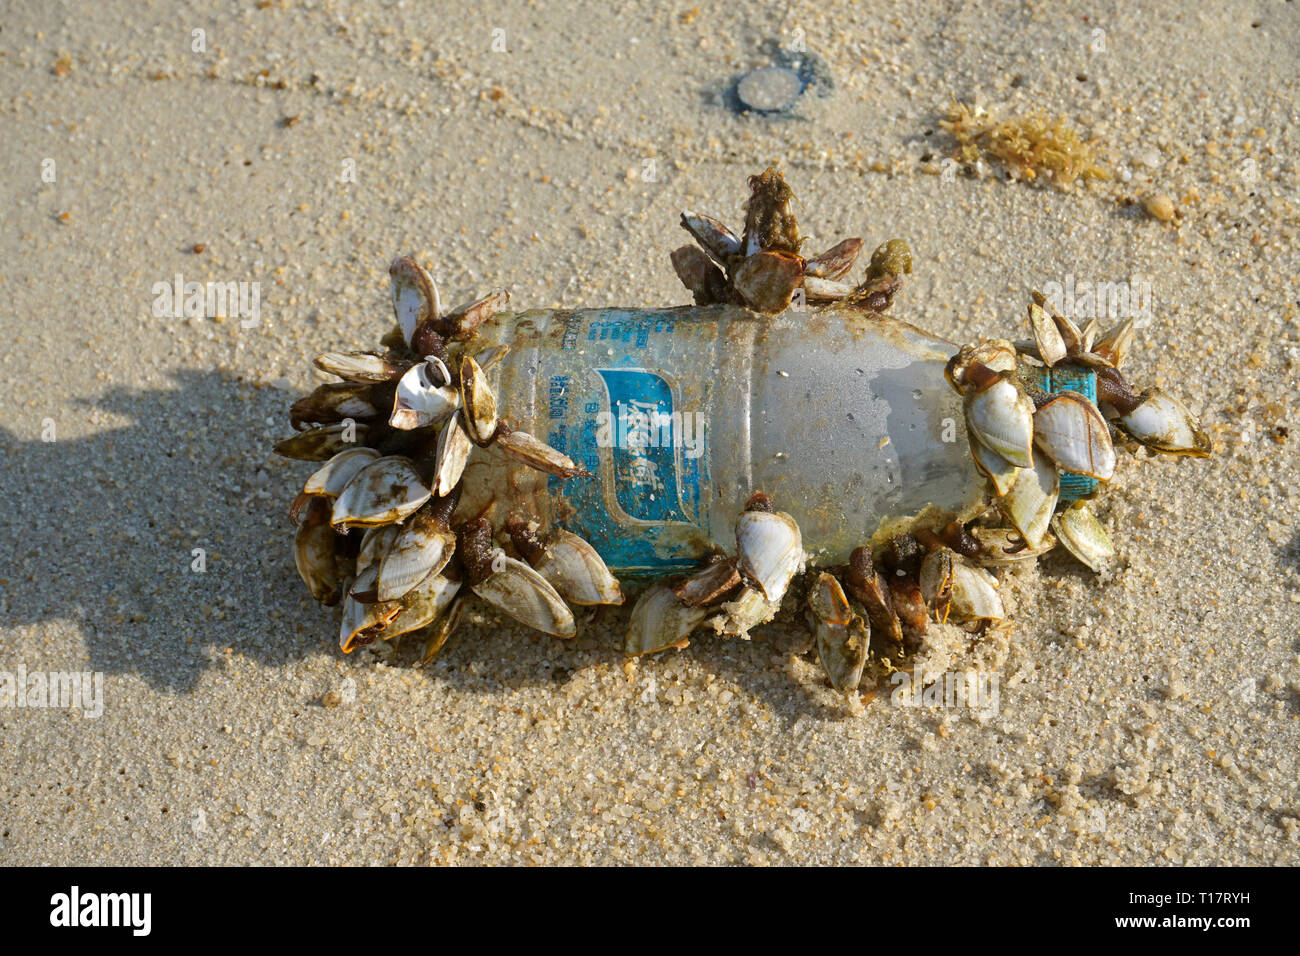 Goose barnacles  (Pedunculata) on a plastic bottle, washed up at Lamai Beach, Koh Samui, Gulf of Thailand, Thailand - Stock Image